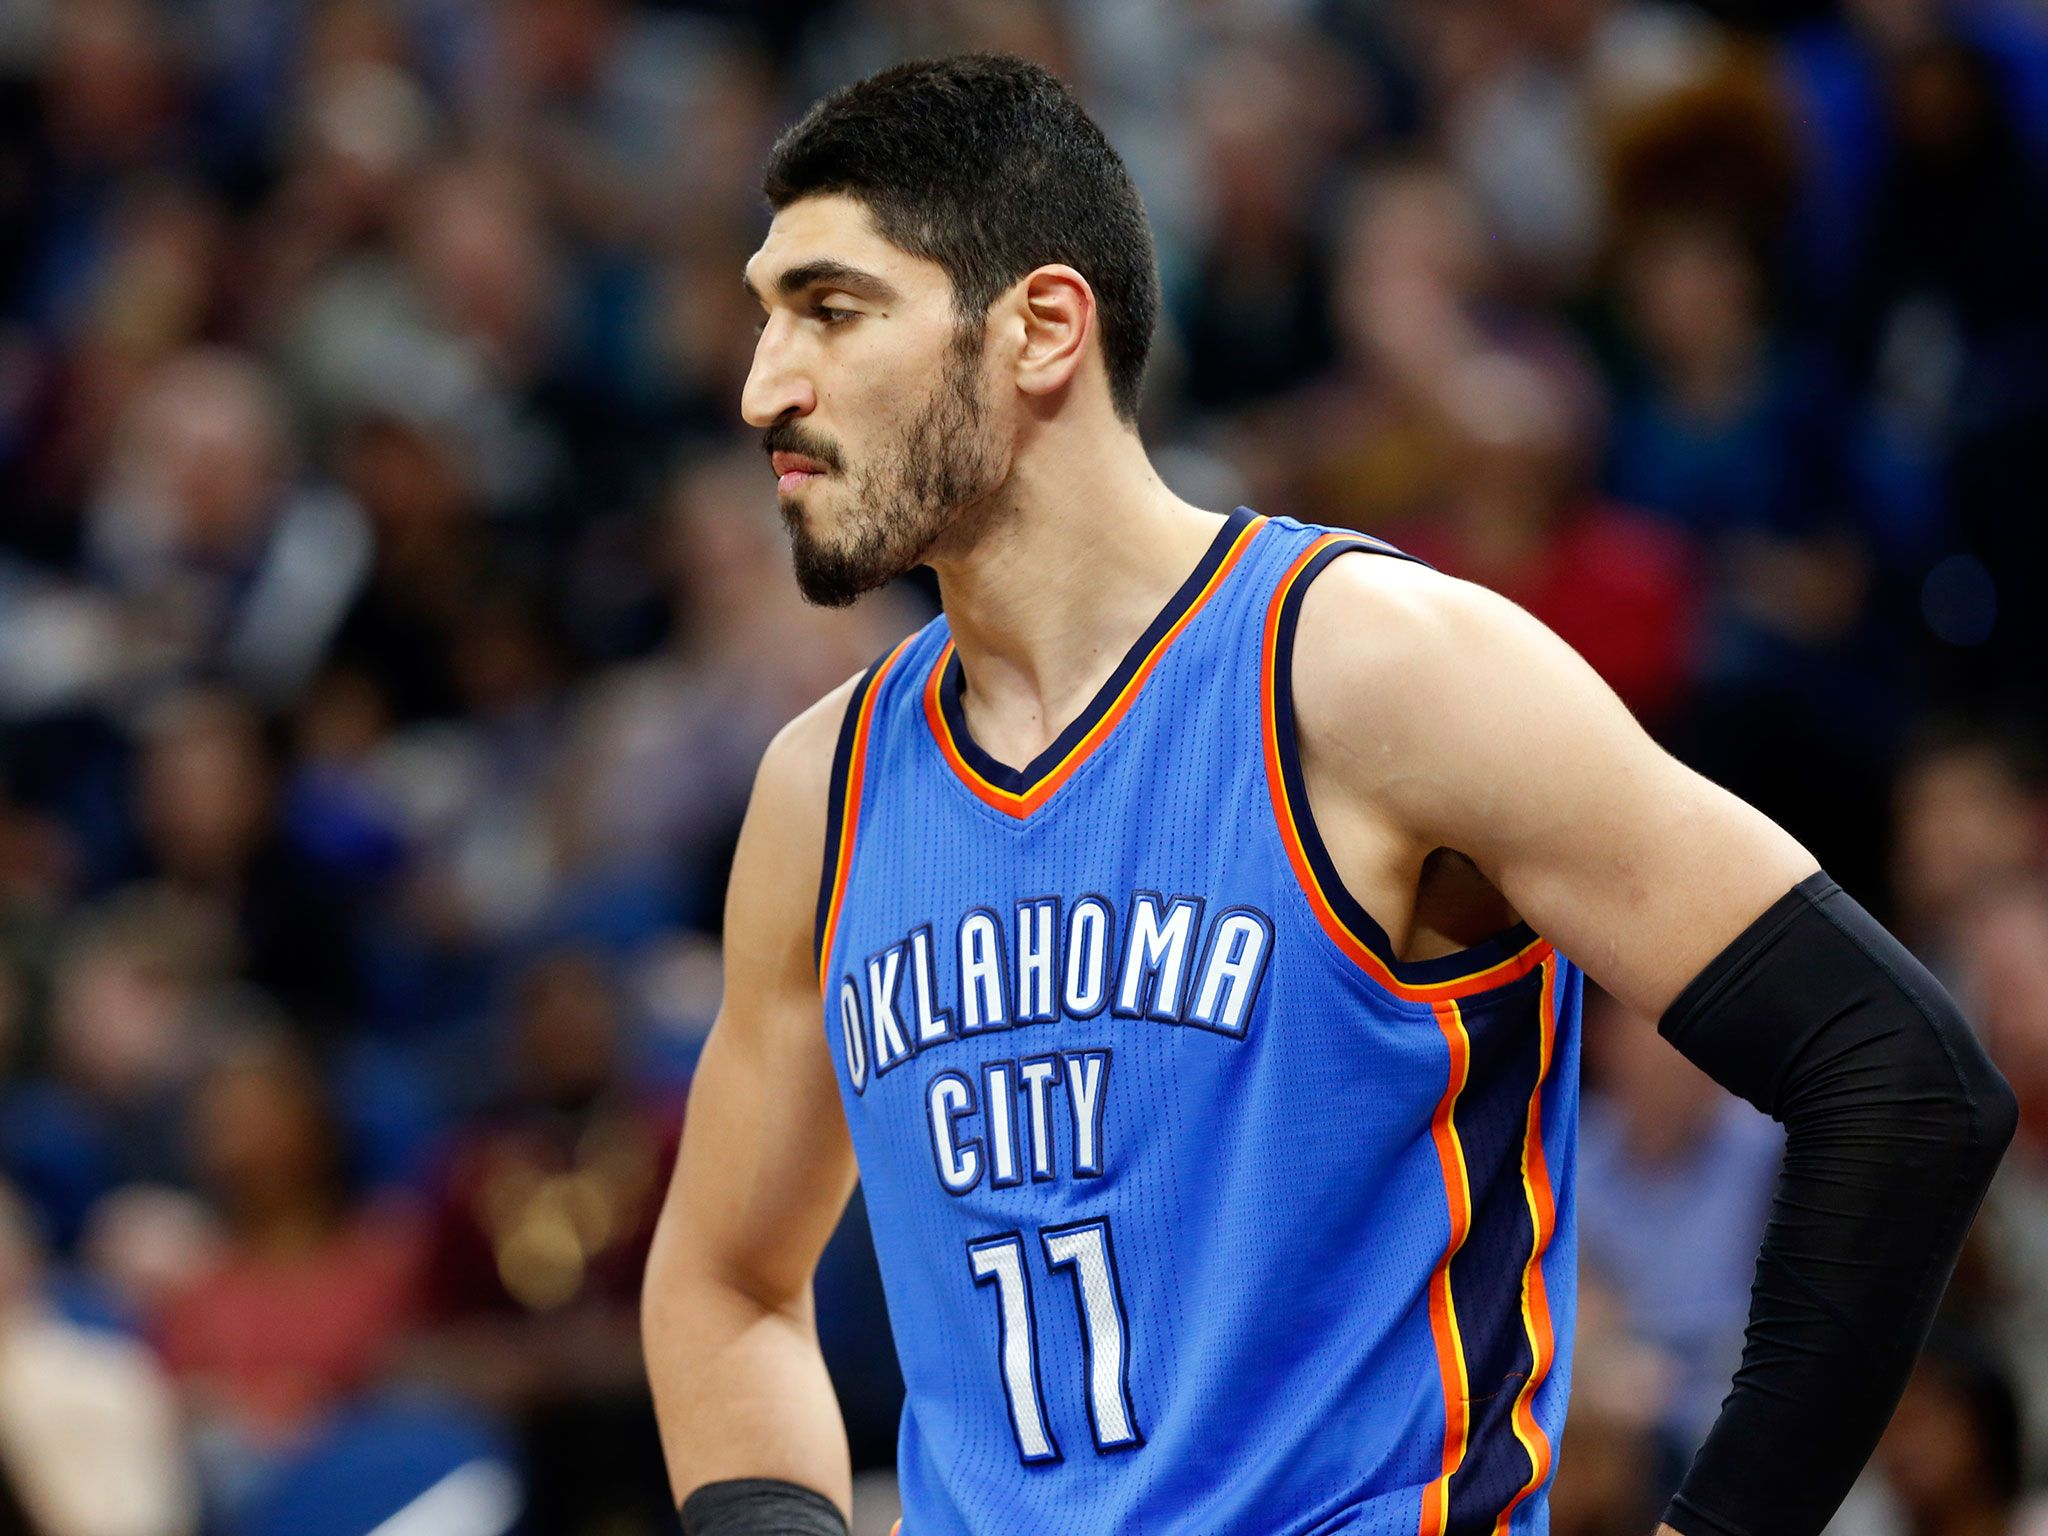 NBA basketball player Enes Kanter held at Romanian airport after Turkey cancels passport in post-coup crackdown